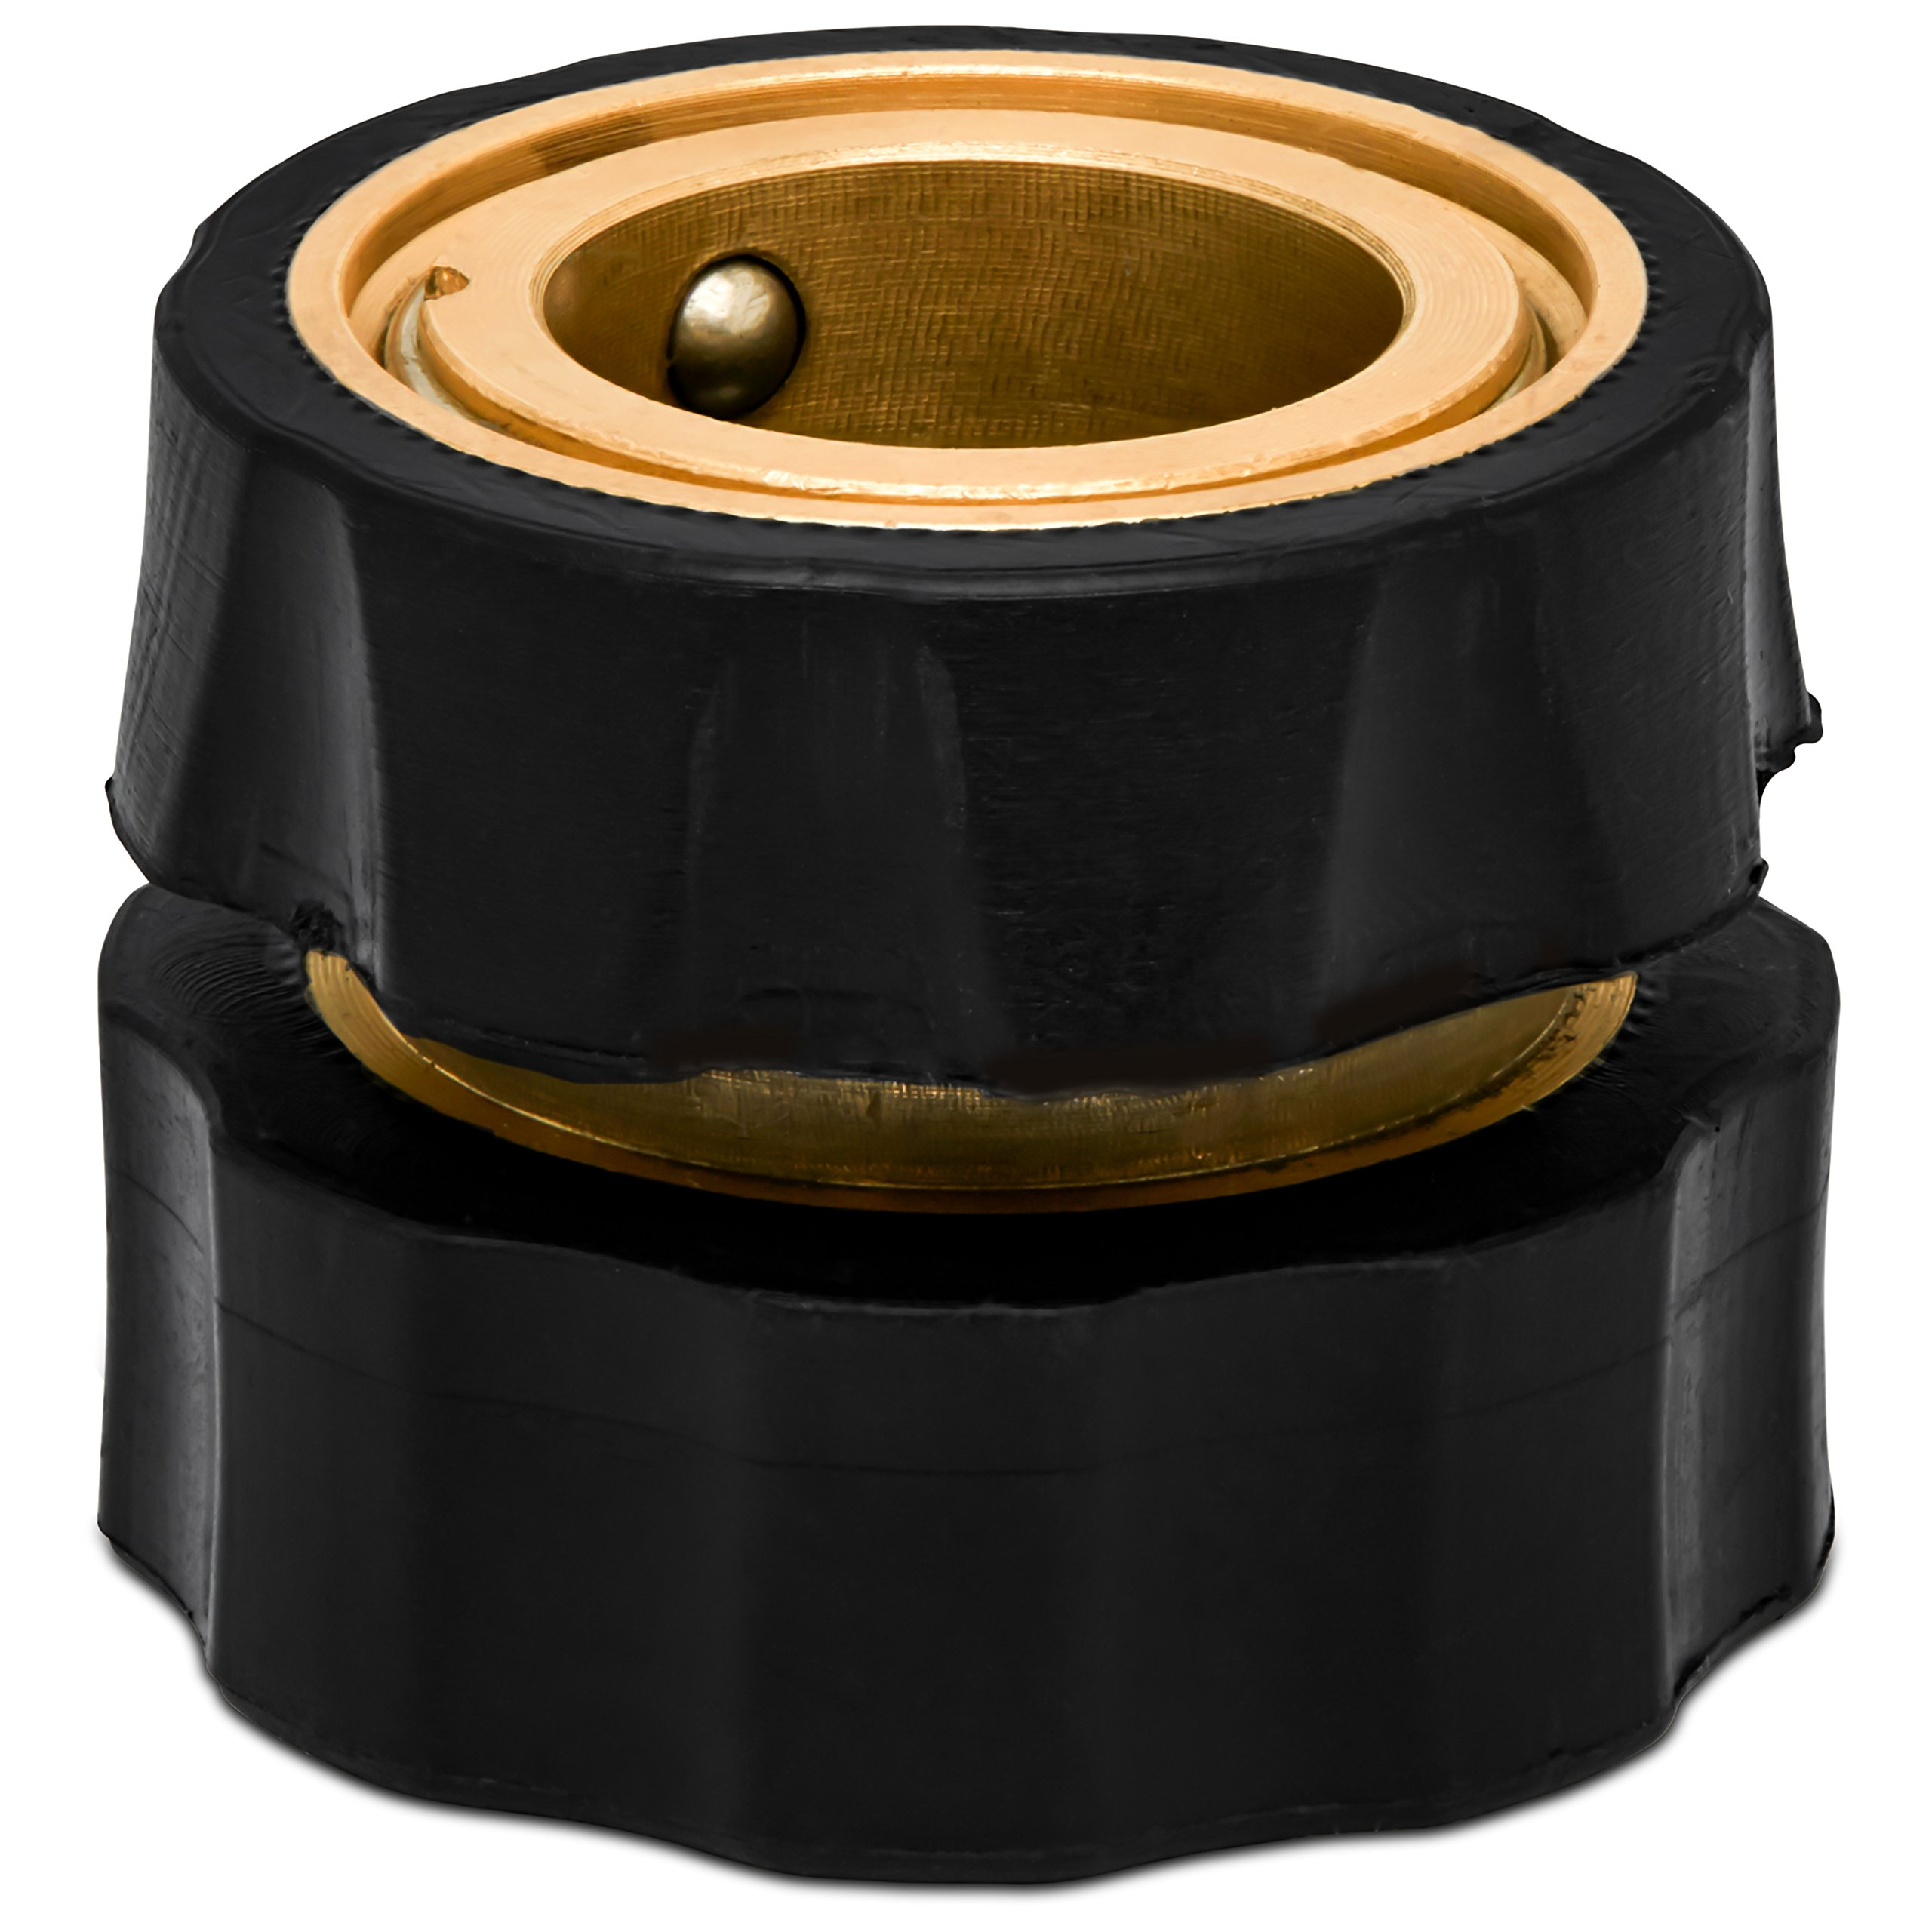 Morvat Brass Quick Hose Connector | Easily Add Attachments to Garden Hose | Great for Gardening, Washing, Sprayers, Nozzles, Sprinkler or Watering Tools | Pack of 6 by Morvat (Image #9)